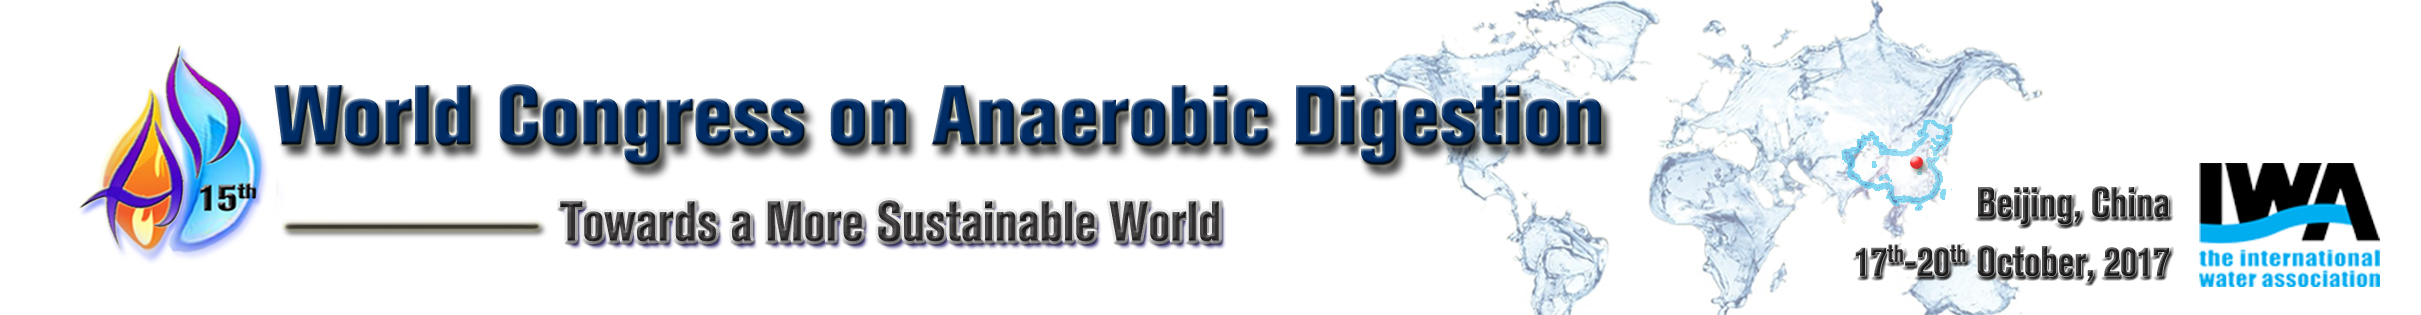 15 world congress on anaerobic digestion